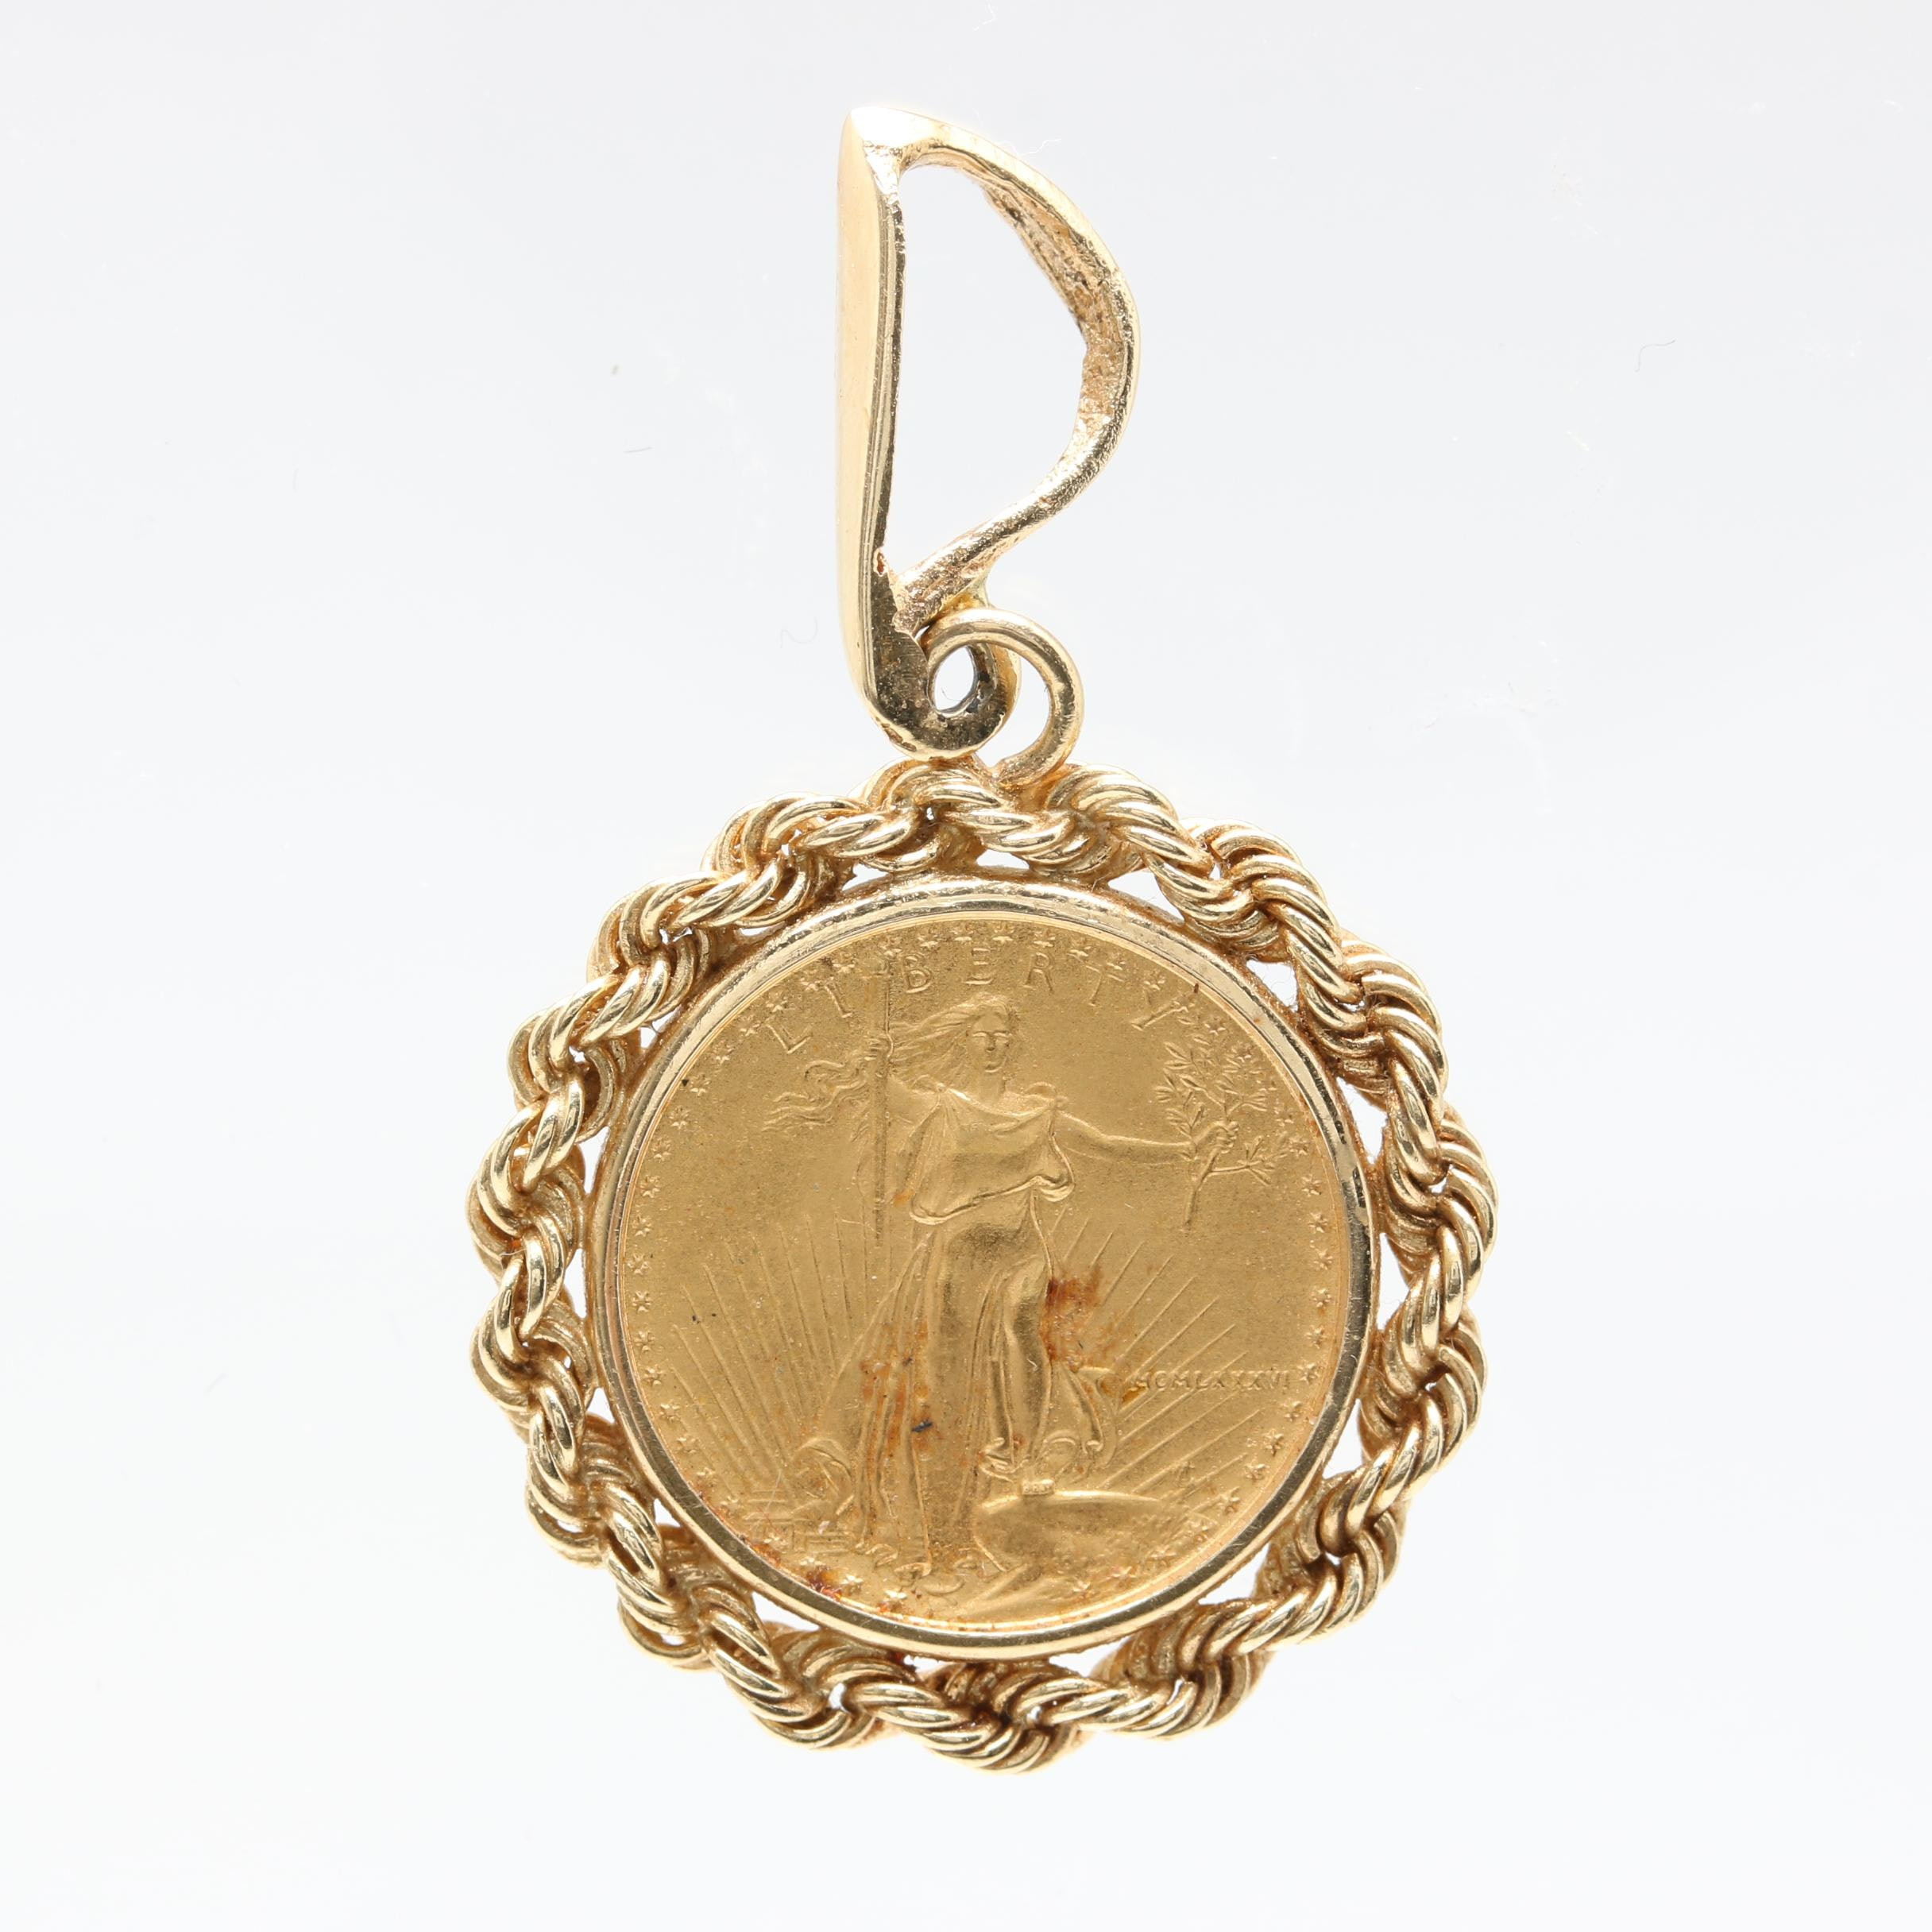 14K Yellow Gold Pendant with 1986 $5 American Eagle Gold Bullion Coin